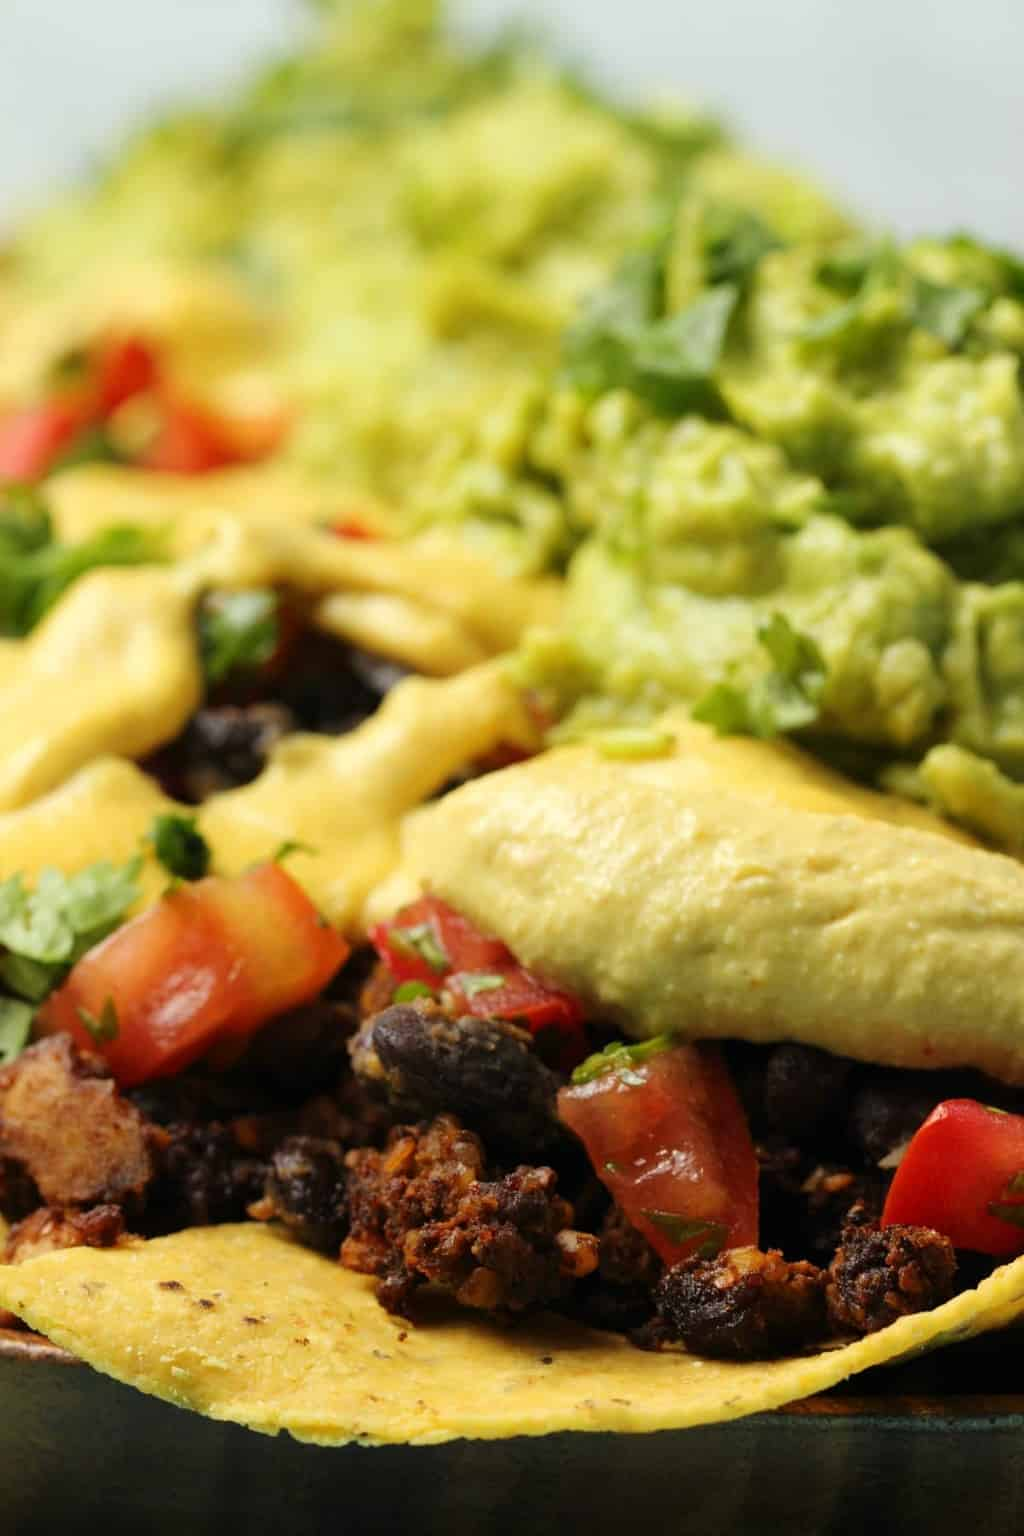 Fully loaded vegan nachos topped with guacamole and cilantro.